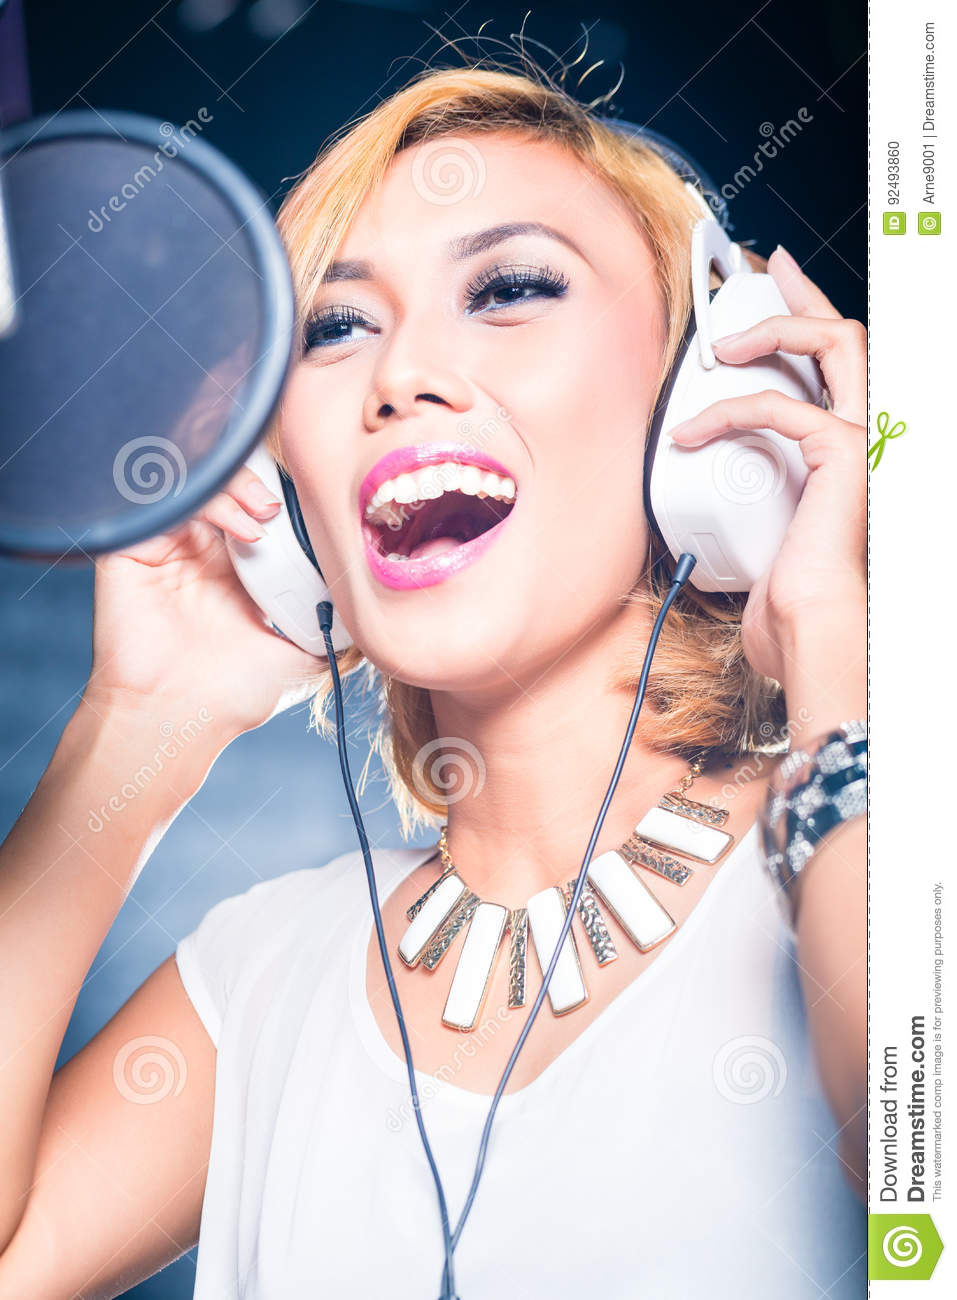 Asian Singer Producing Song In Recording Studio Stock Photo - Image